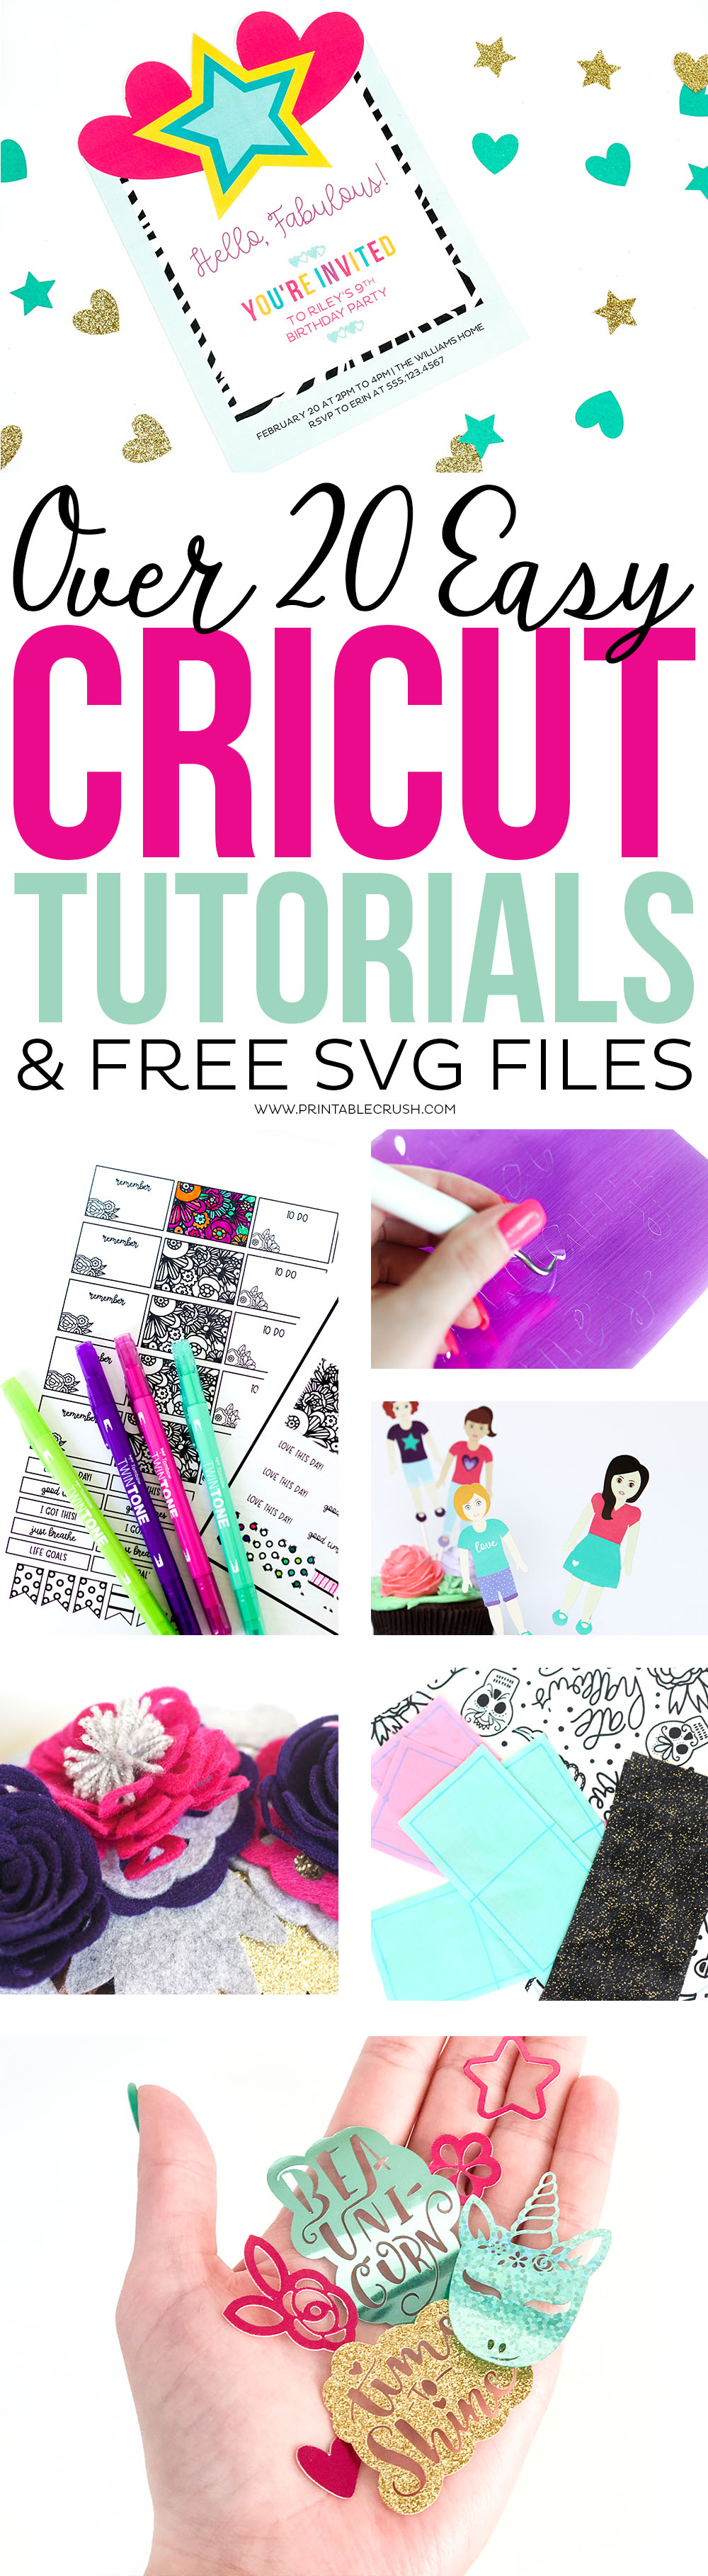 Get inspired by over 20 Easy Cricut Tutorials and Free SVG Files. You'll find design space tutorials, Cricut craft ideas, freebies, and more!